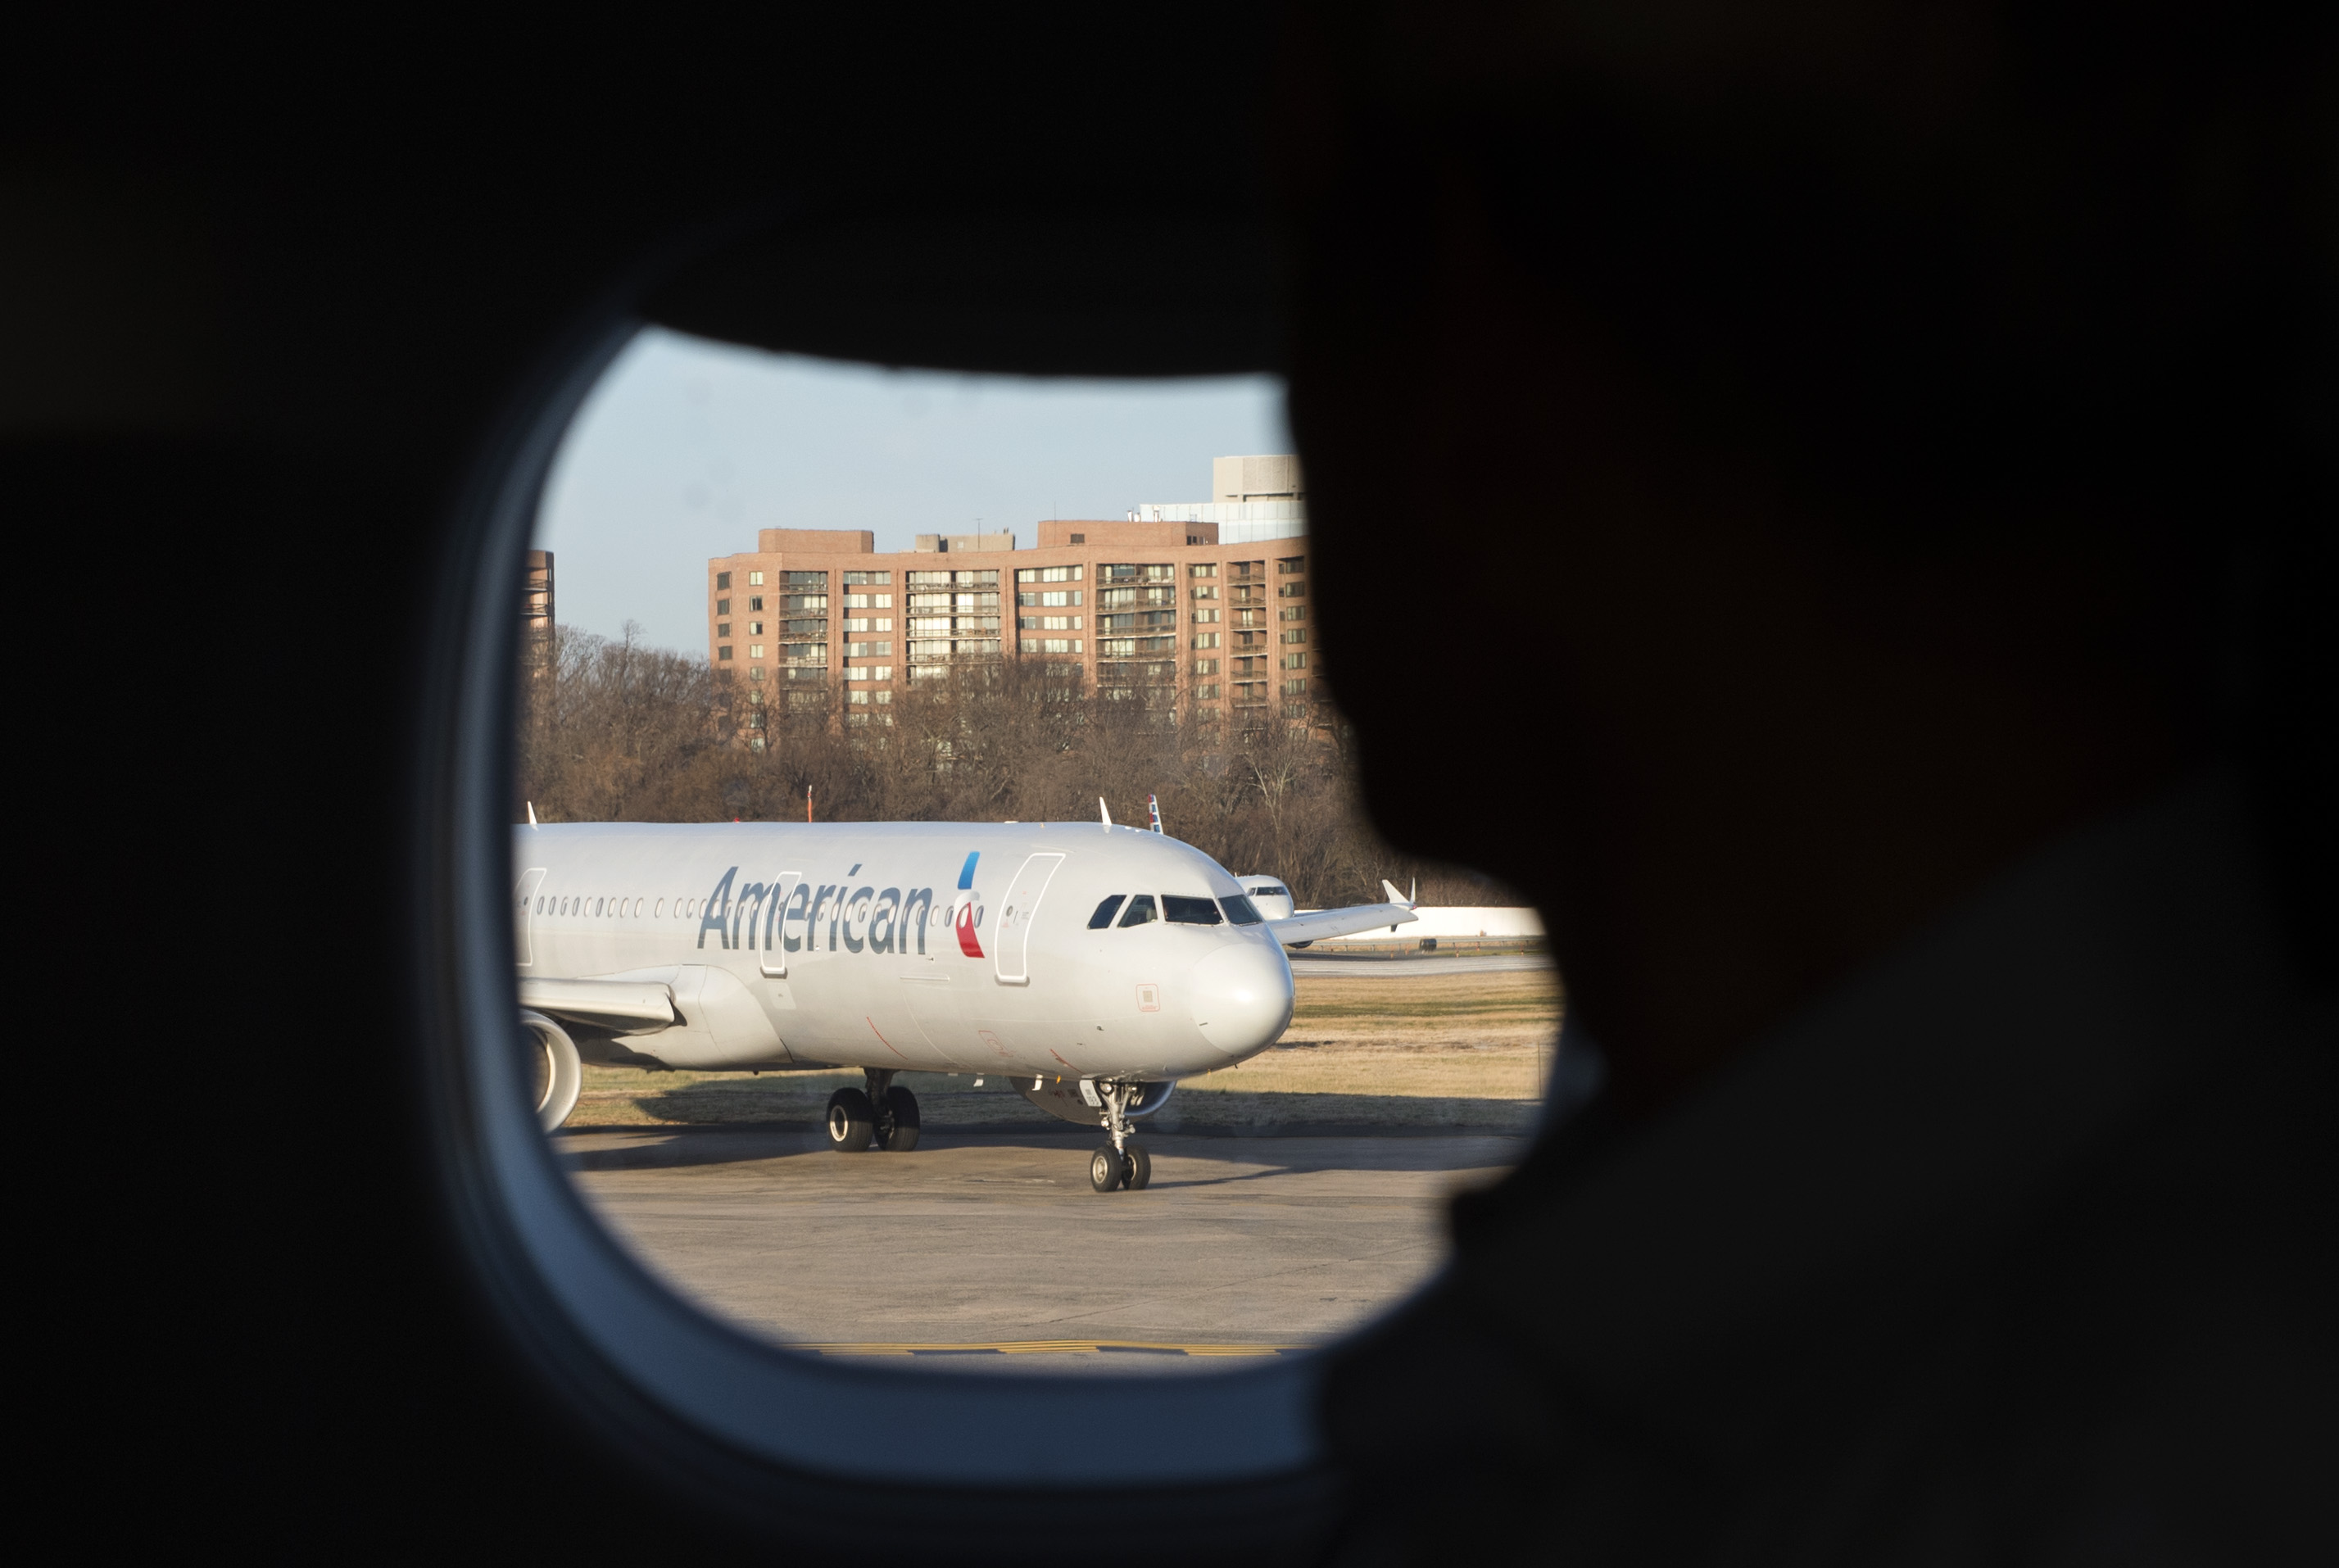 A man looks out his window at an American Airlines plane at Reagan National Airport in Arlington, Virginia on February 24, 2017.